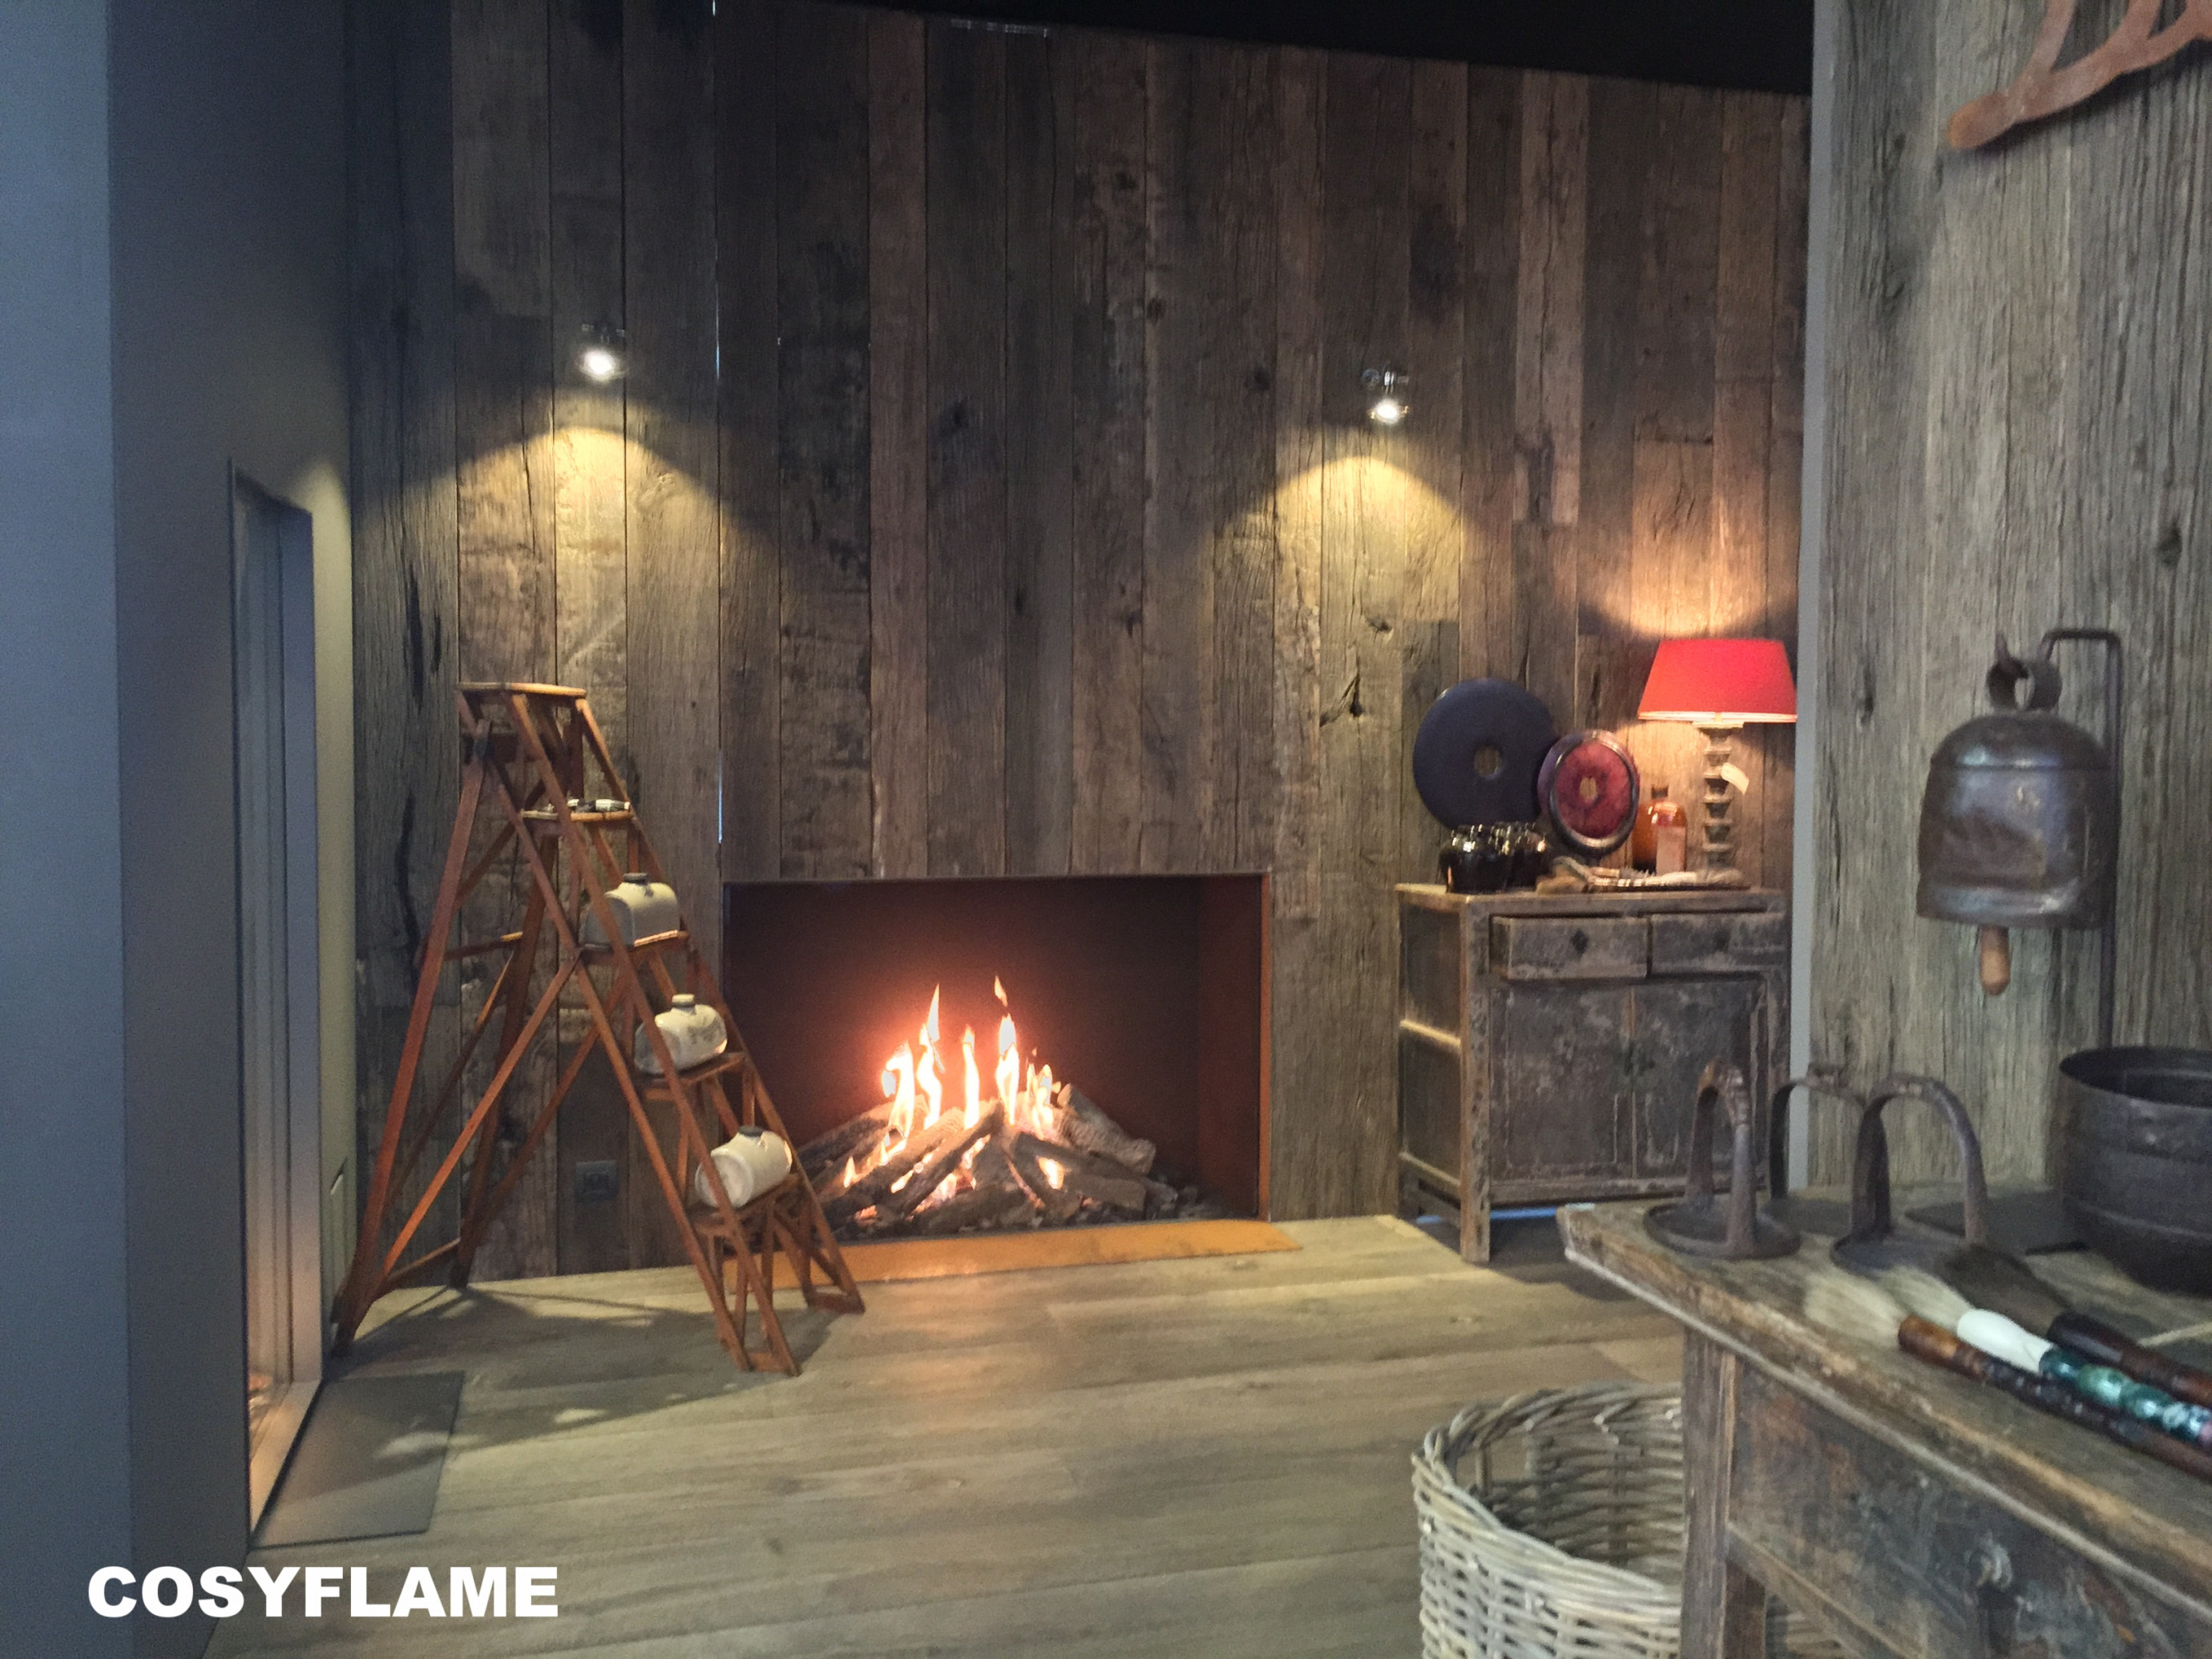 Cosyflame-Corten-file-51.jpeg